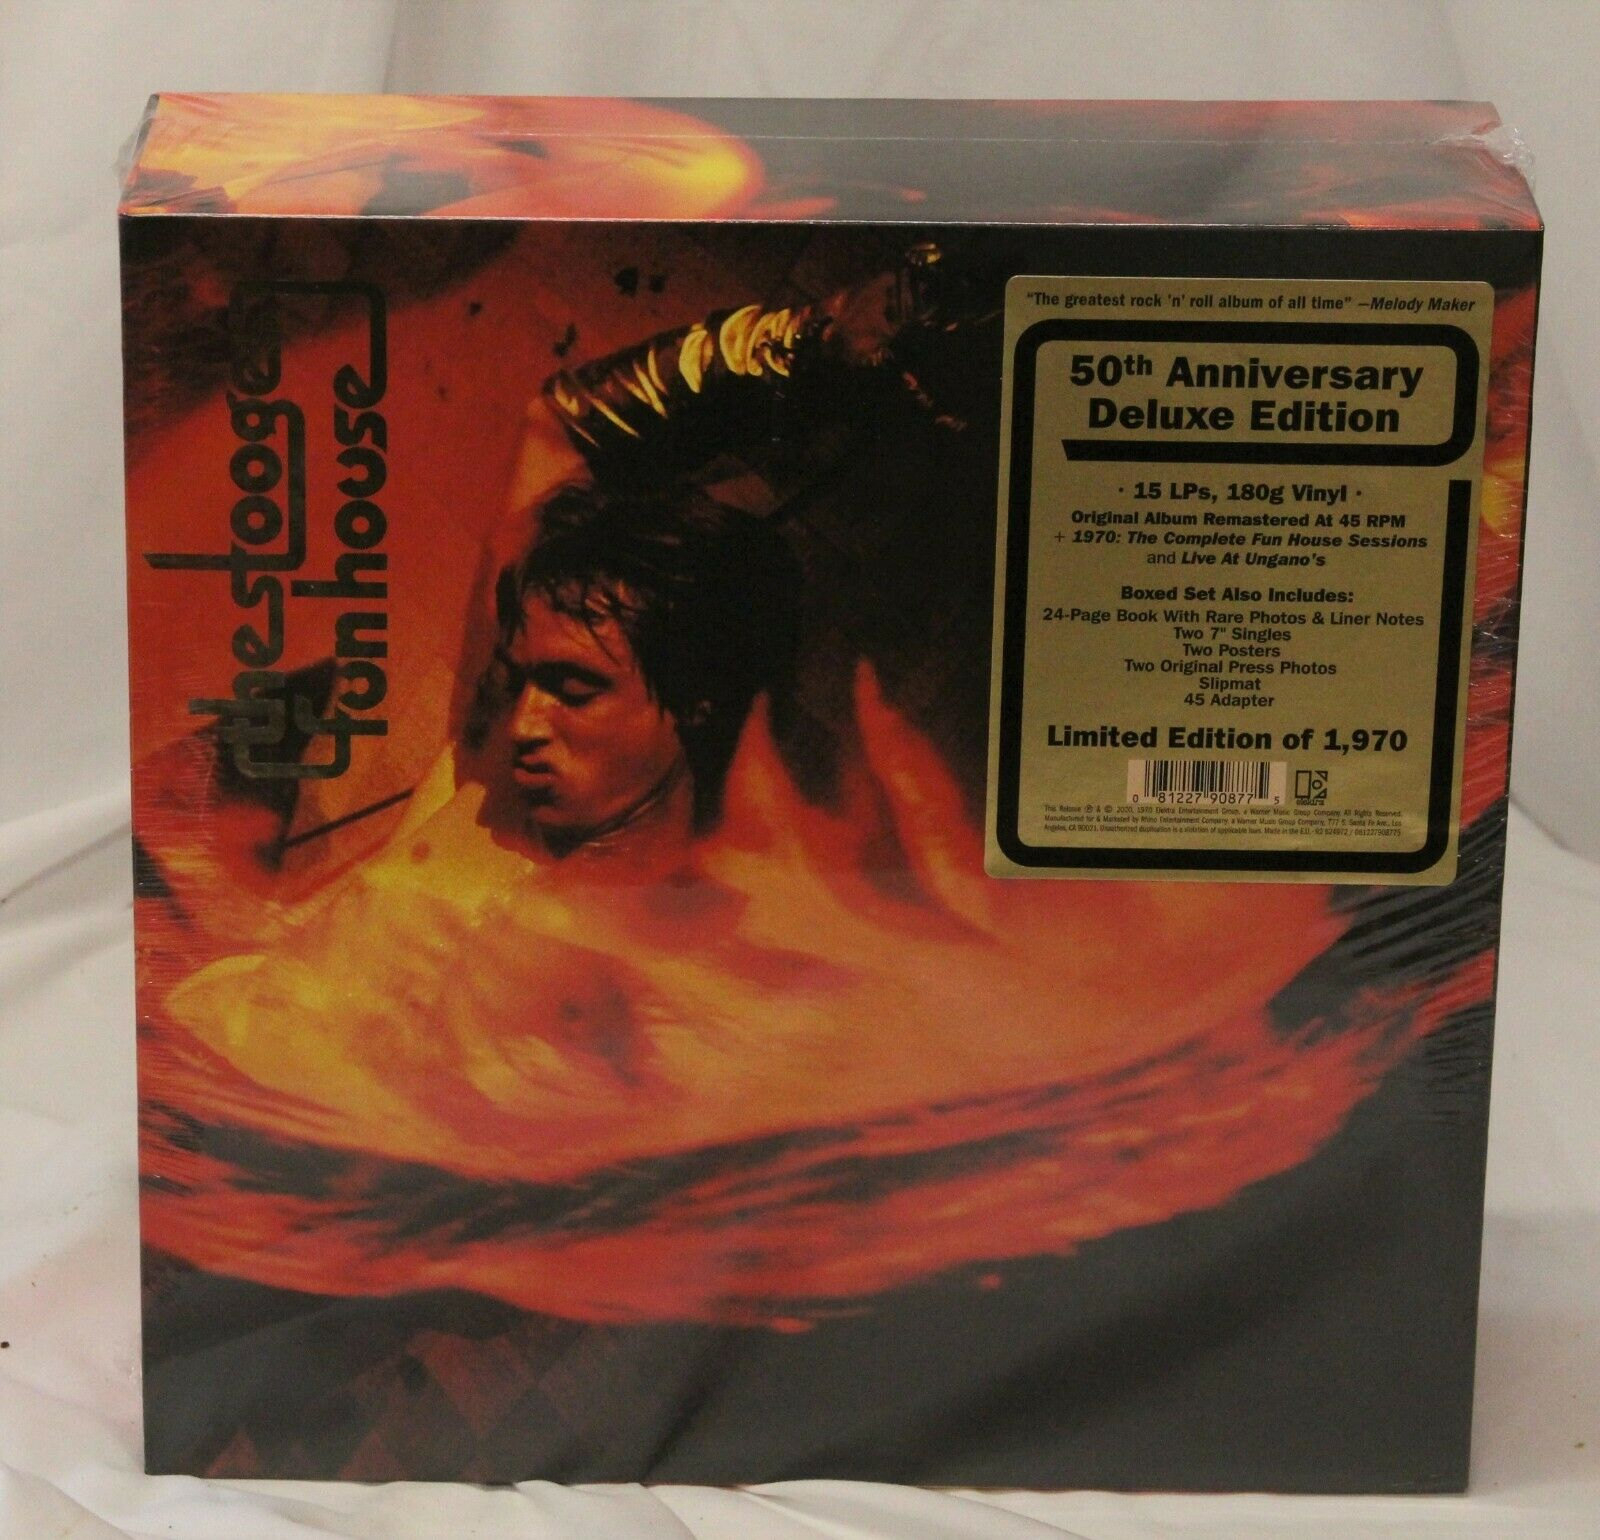 Stooges Fun House 50th Anniversary Deluxe Edition 817/1970 Limited Edition